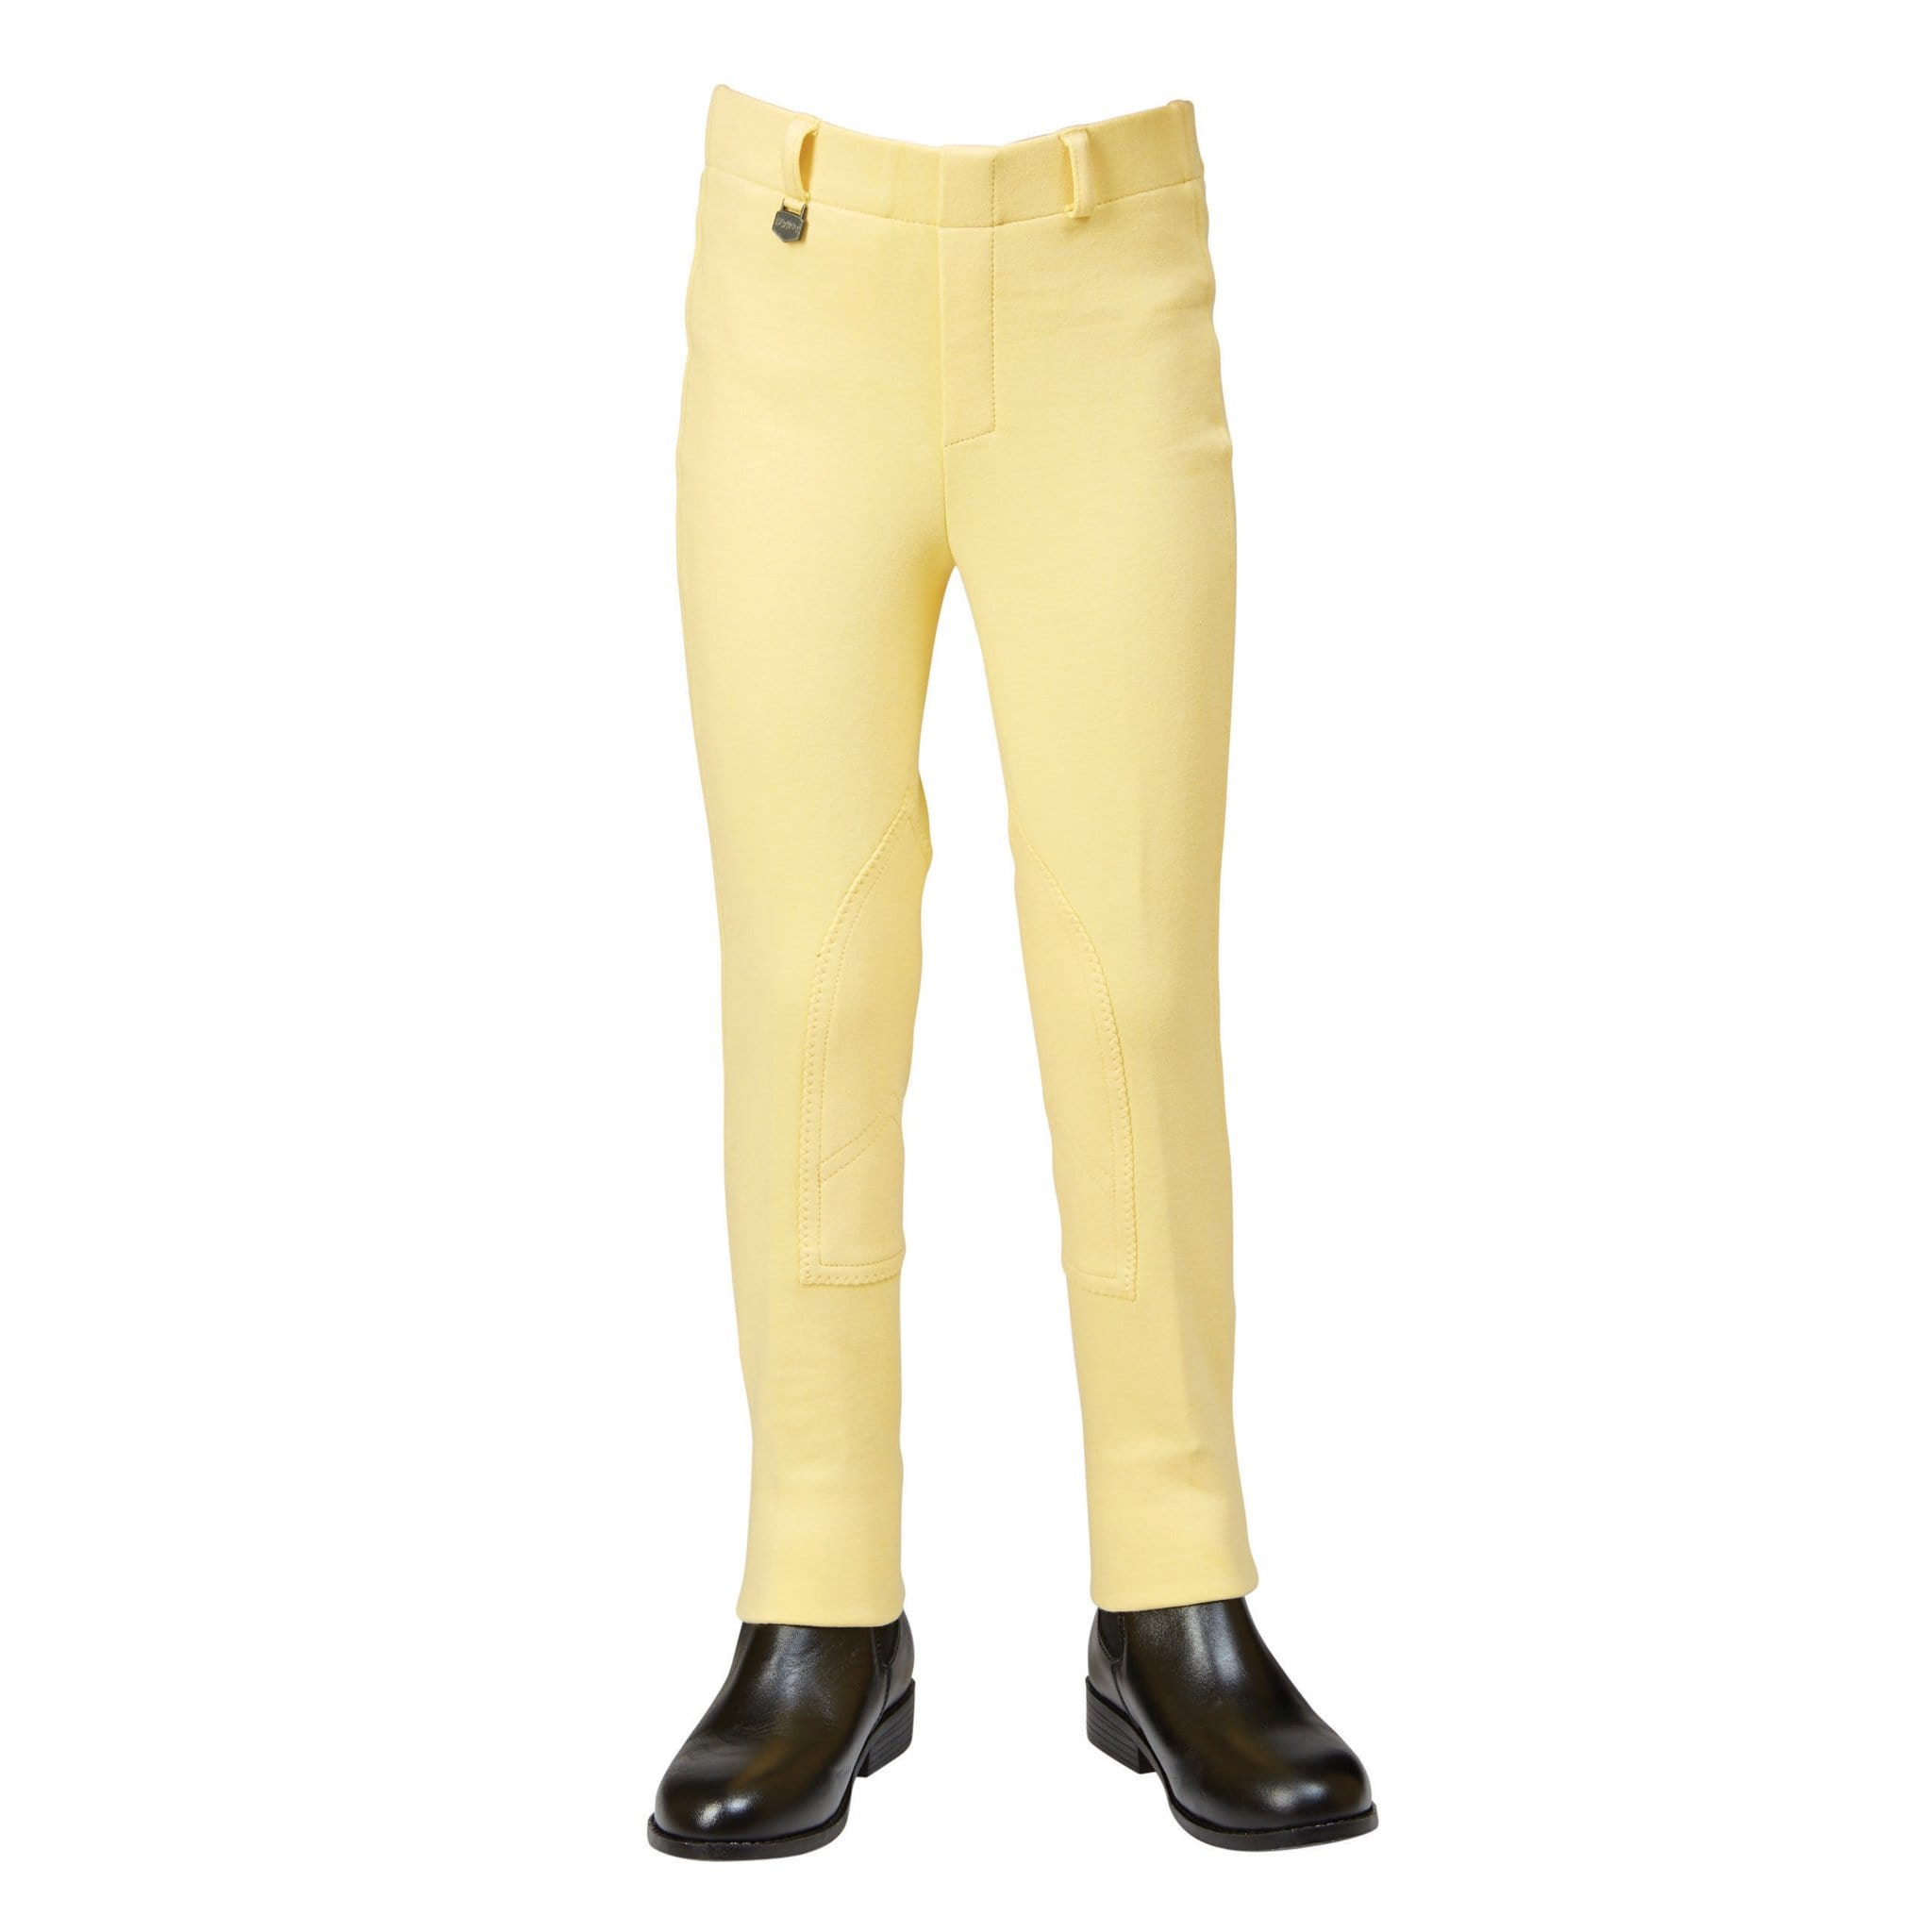 Dublin Children's Supafit Classic Pull On Jodhpurs Banana 518980